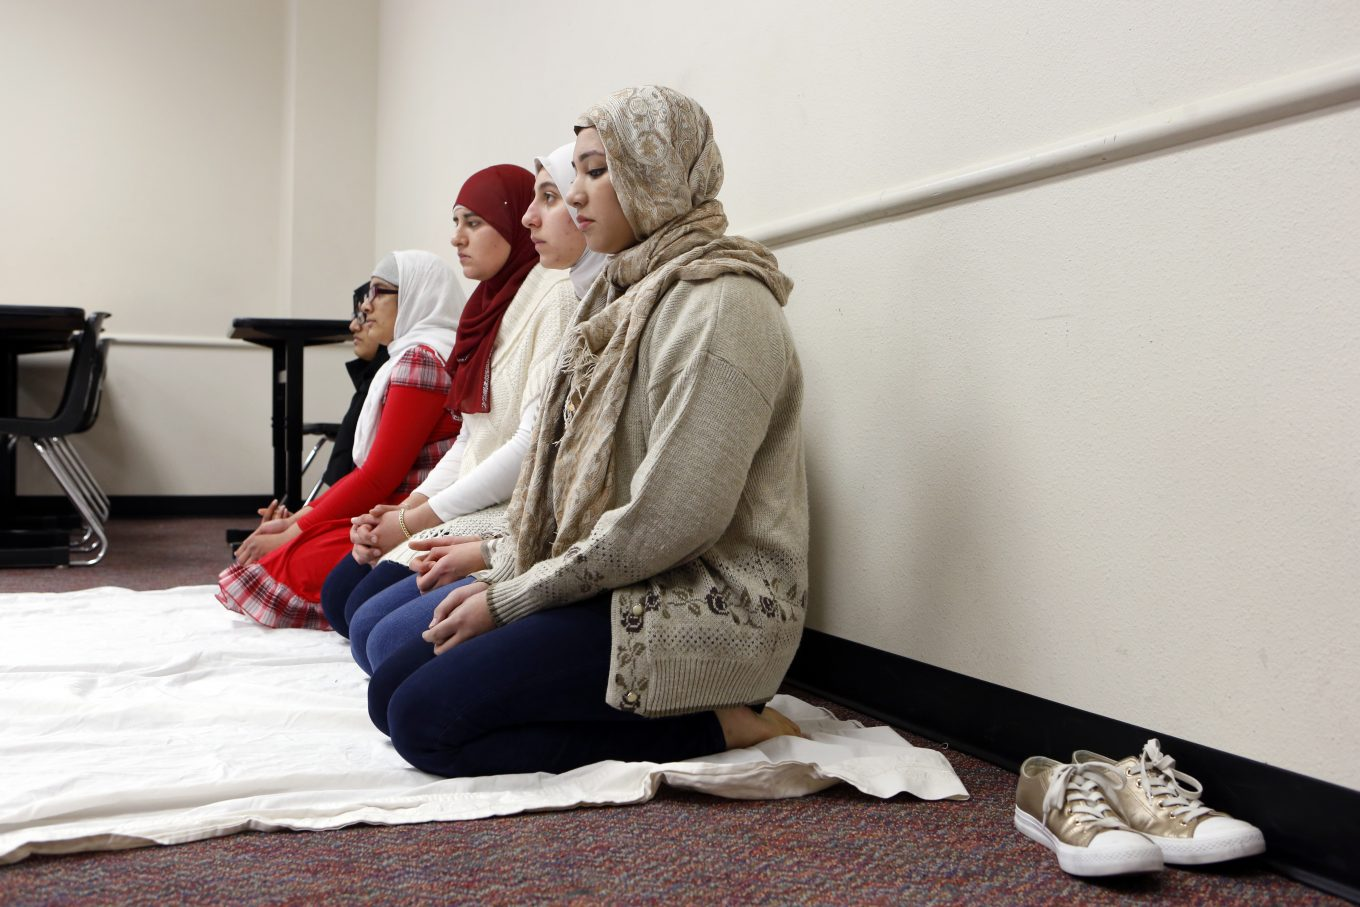 Amna Salman (foreground) and other Muslim students gather to pray inside a classroom at Liberty High in Frisco. Photo/Lara Solt